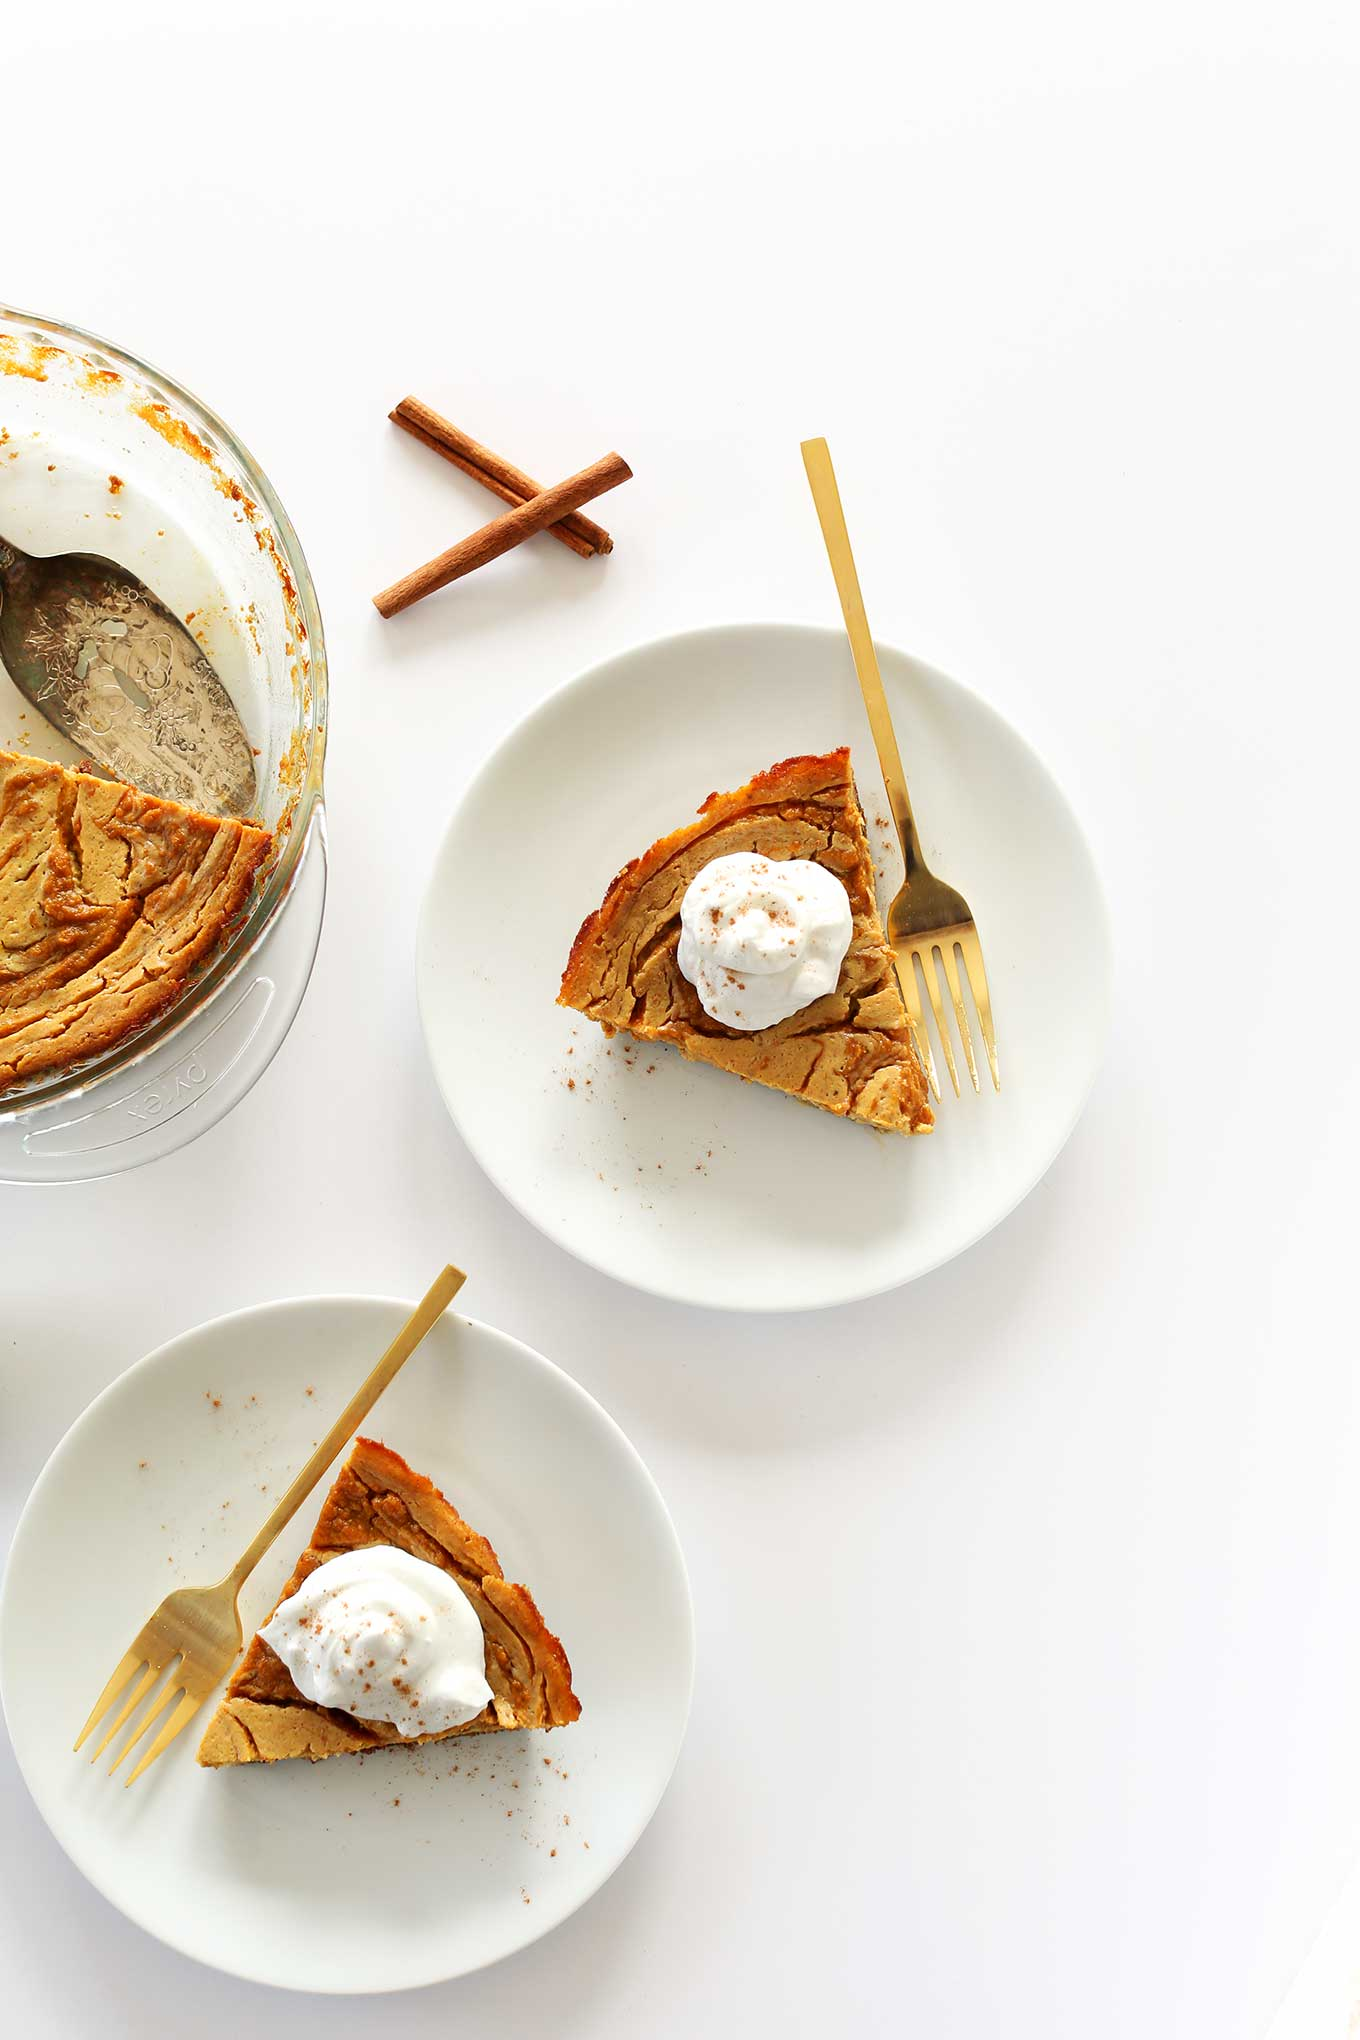 SERIOUSLY amazing Vegan Pumpkin Swirl Cheesecake with Graham Cracker Crust! #vegan #pumpkin #minimalistbaker